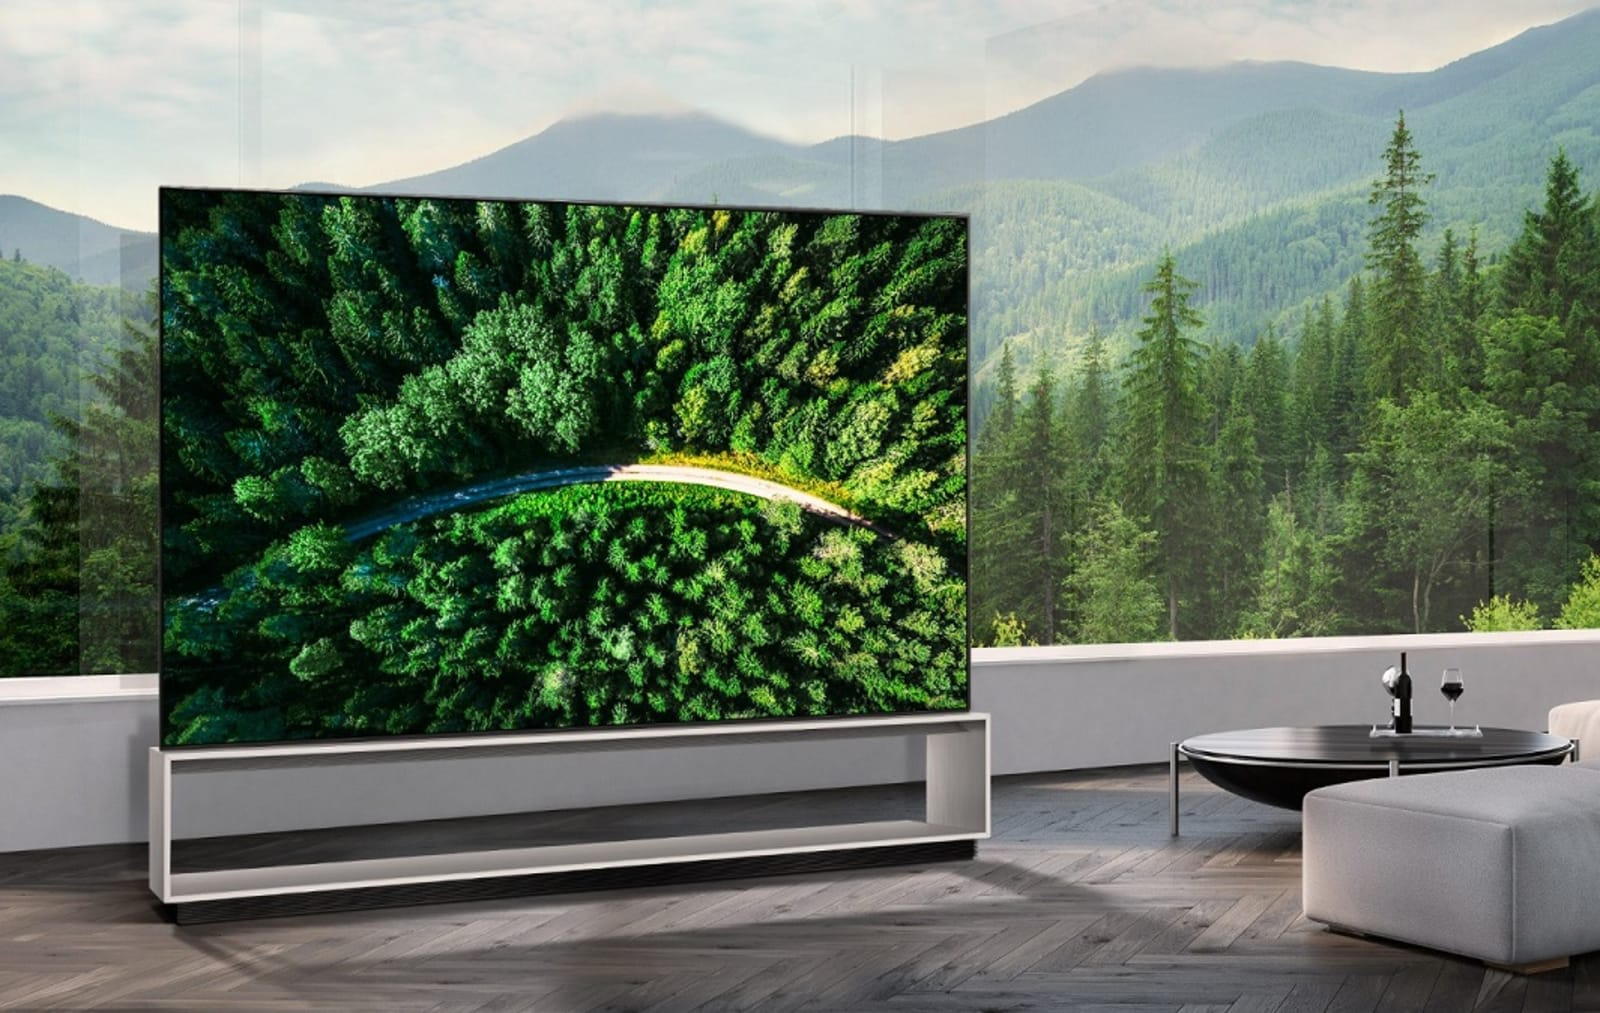 LG's 8K OLED TV is as big as it is expensive